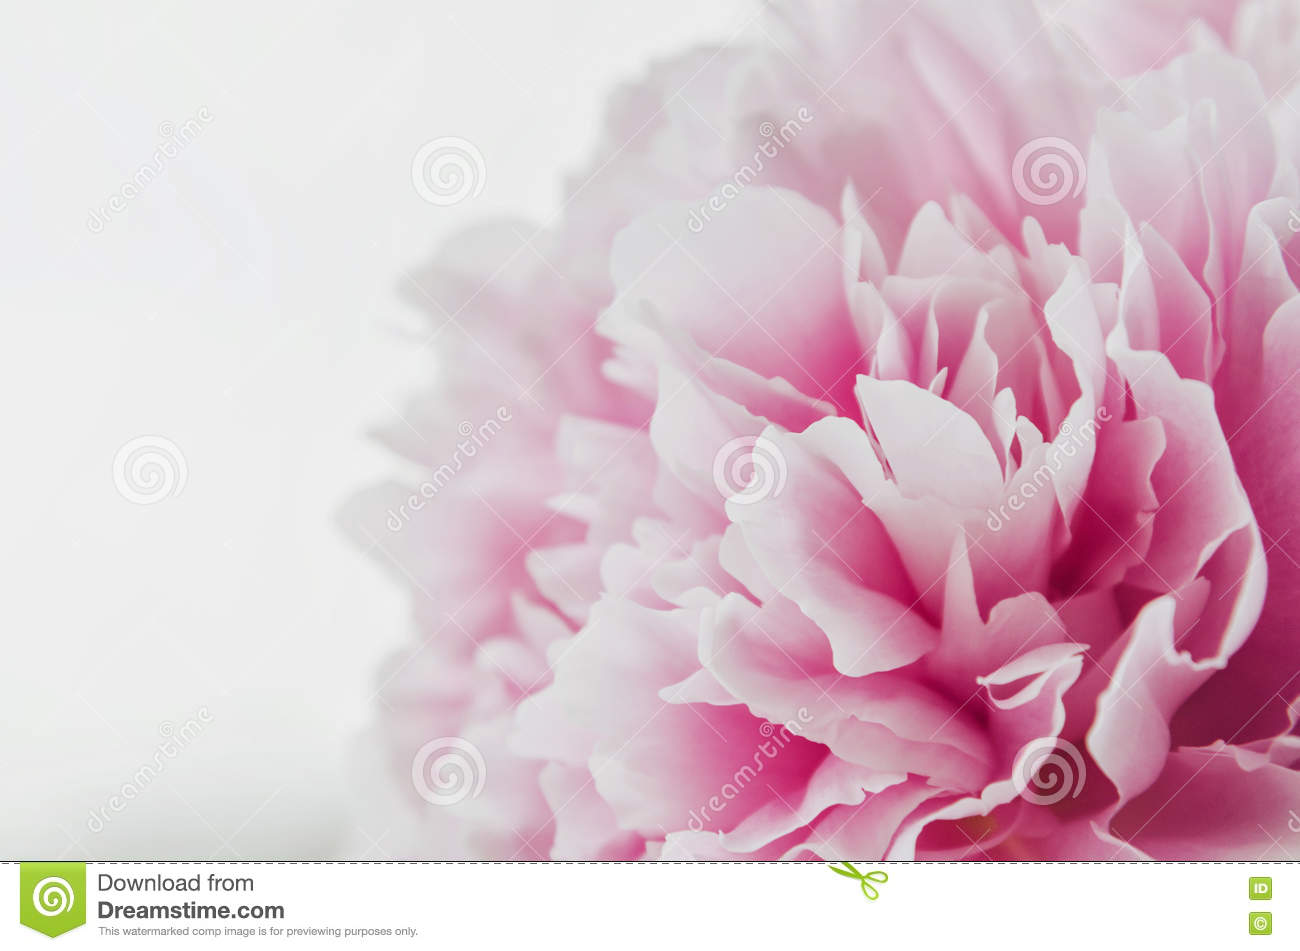 Beautiful fresh pink peony flower isolated on white background. Peonies summer . Love floral. Macro image. Place for